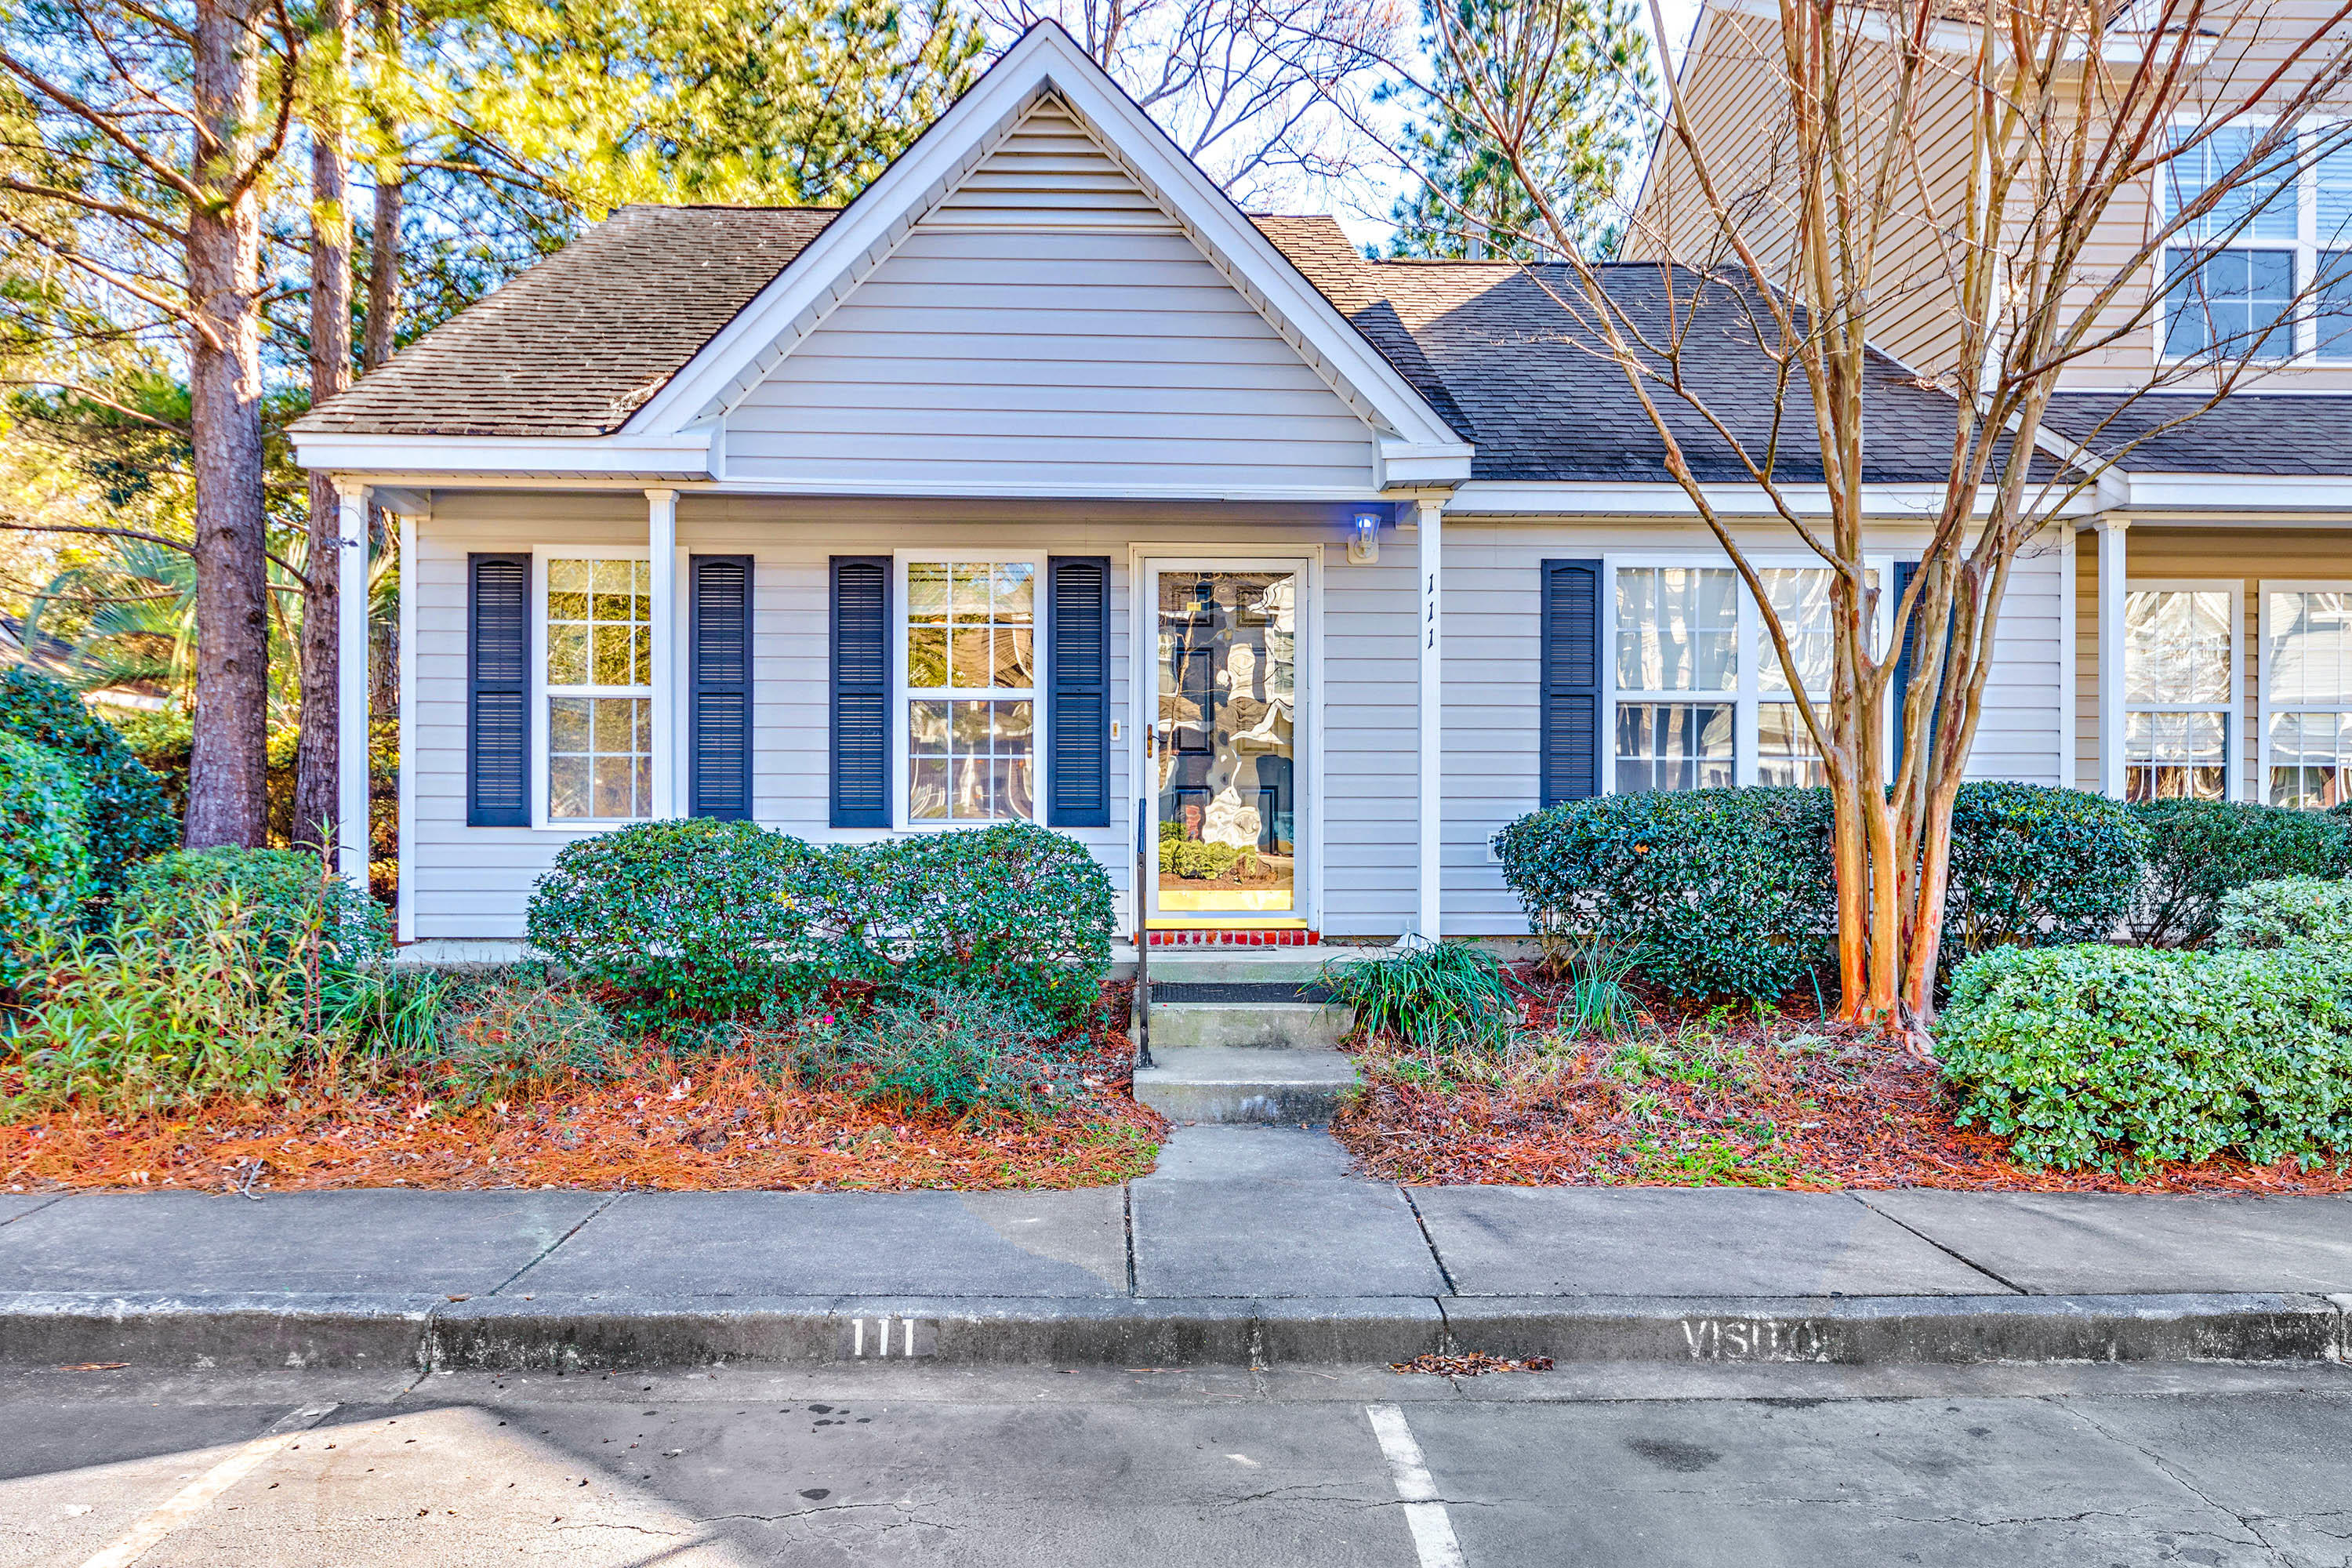 Persimmon Hill Townhouses Homes For Sale - 111 Taylor, Goose Creek, SC - 1